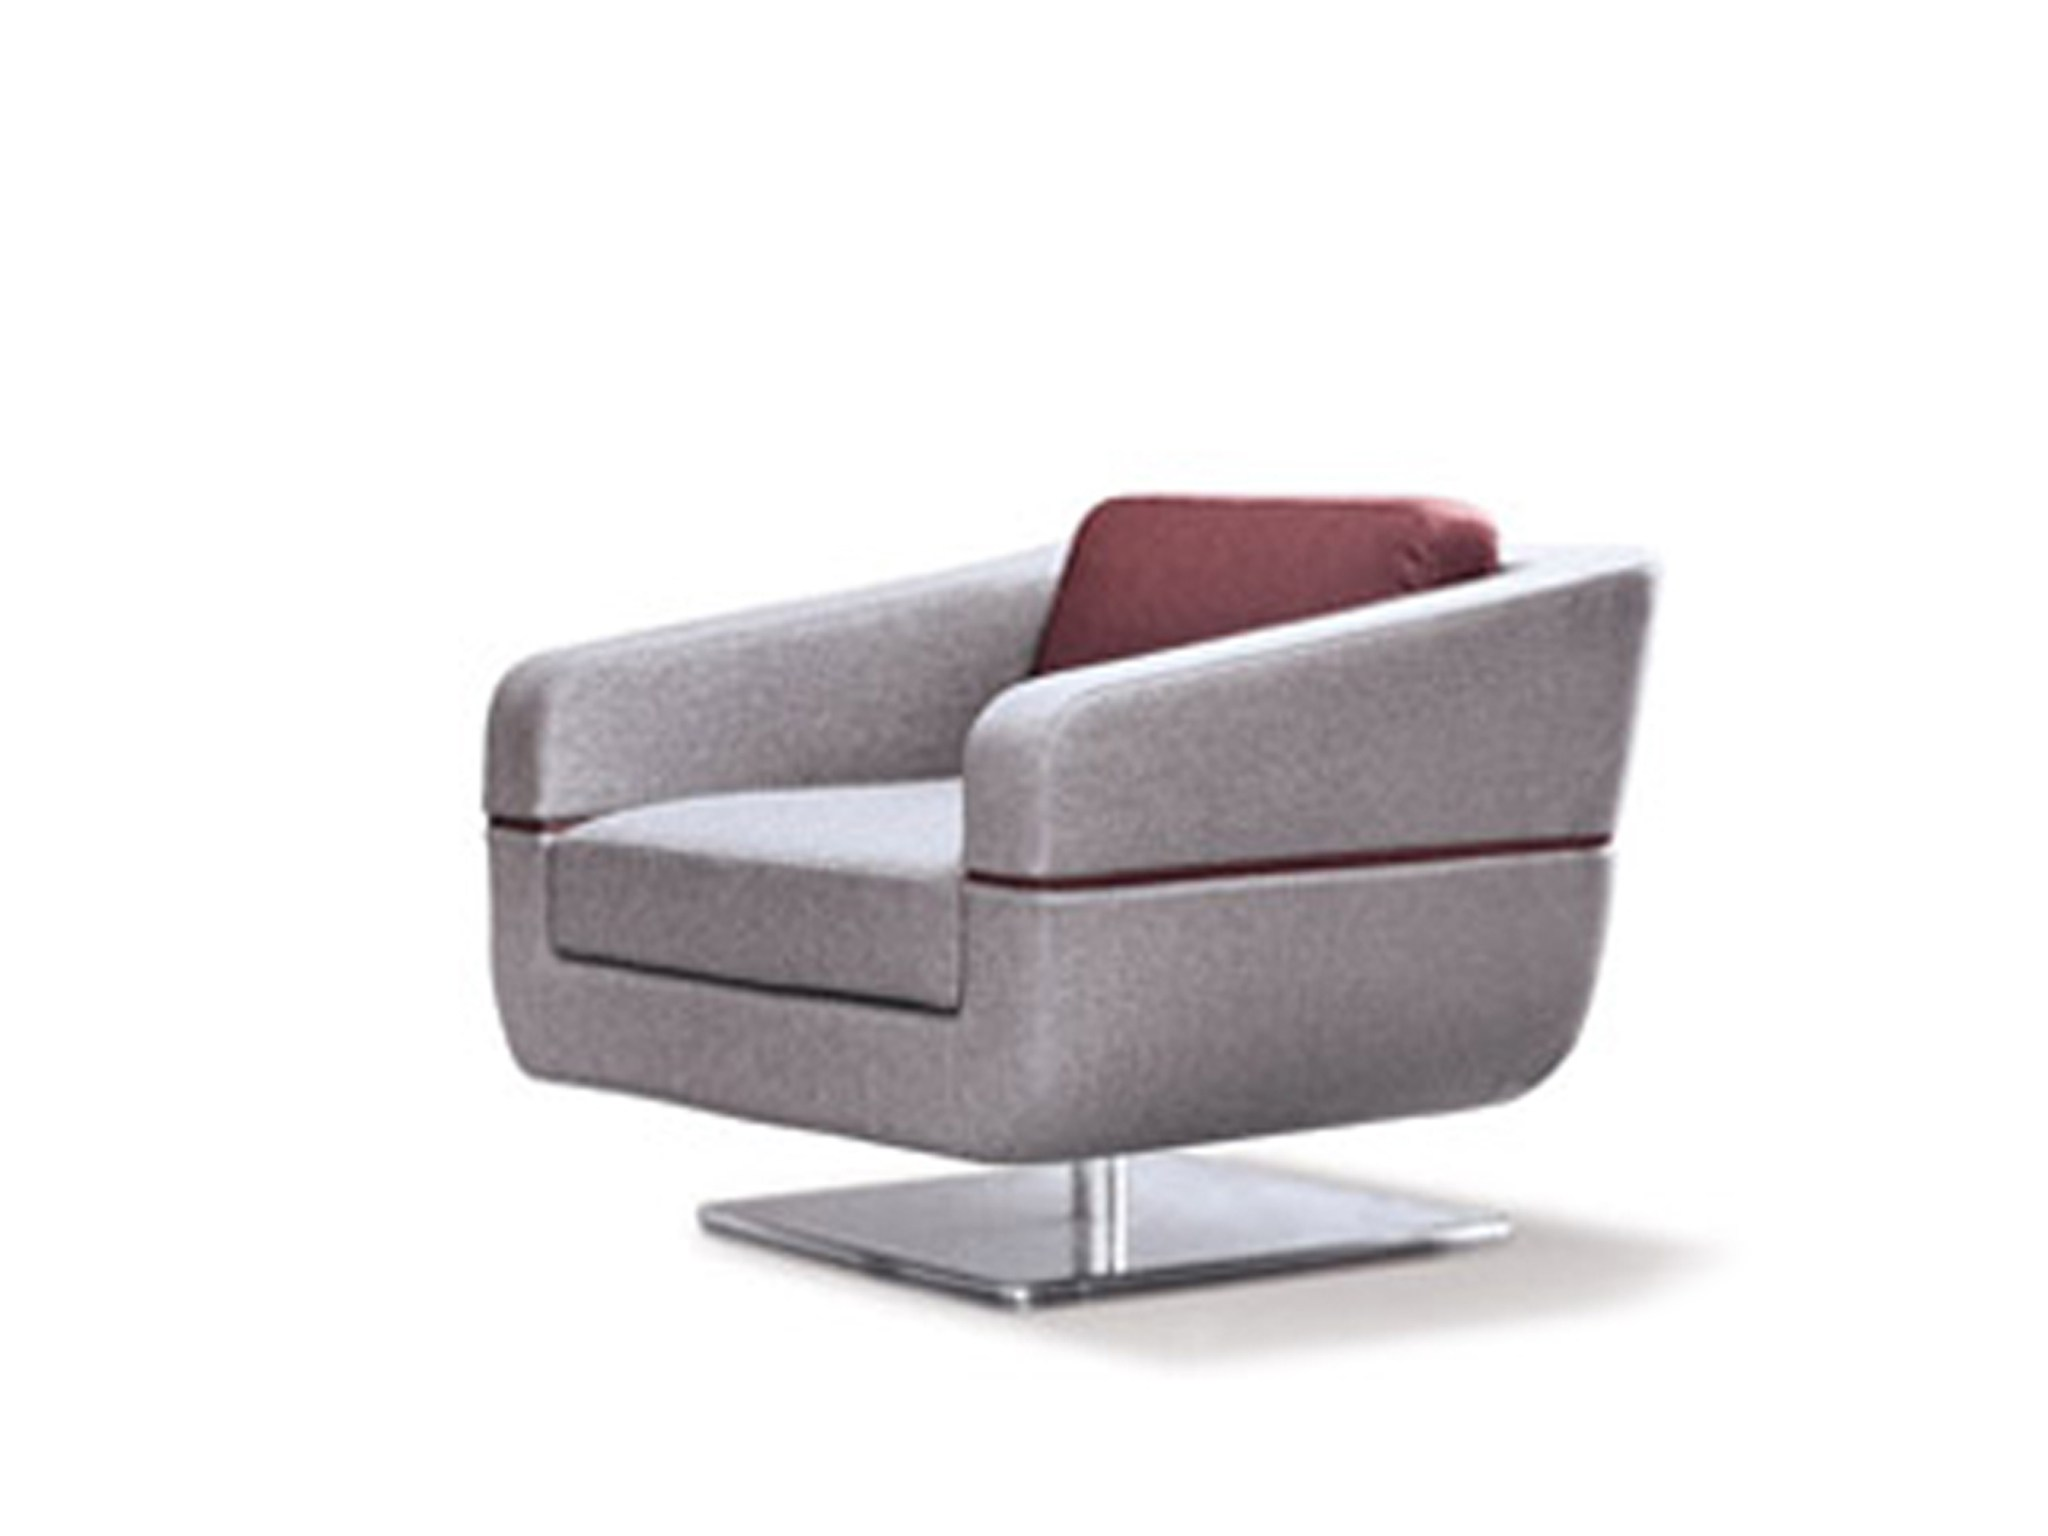 Sofas and Armchairs ESTEL GROUP | Products | Archiproducts -